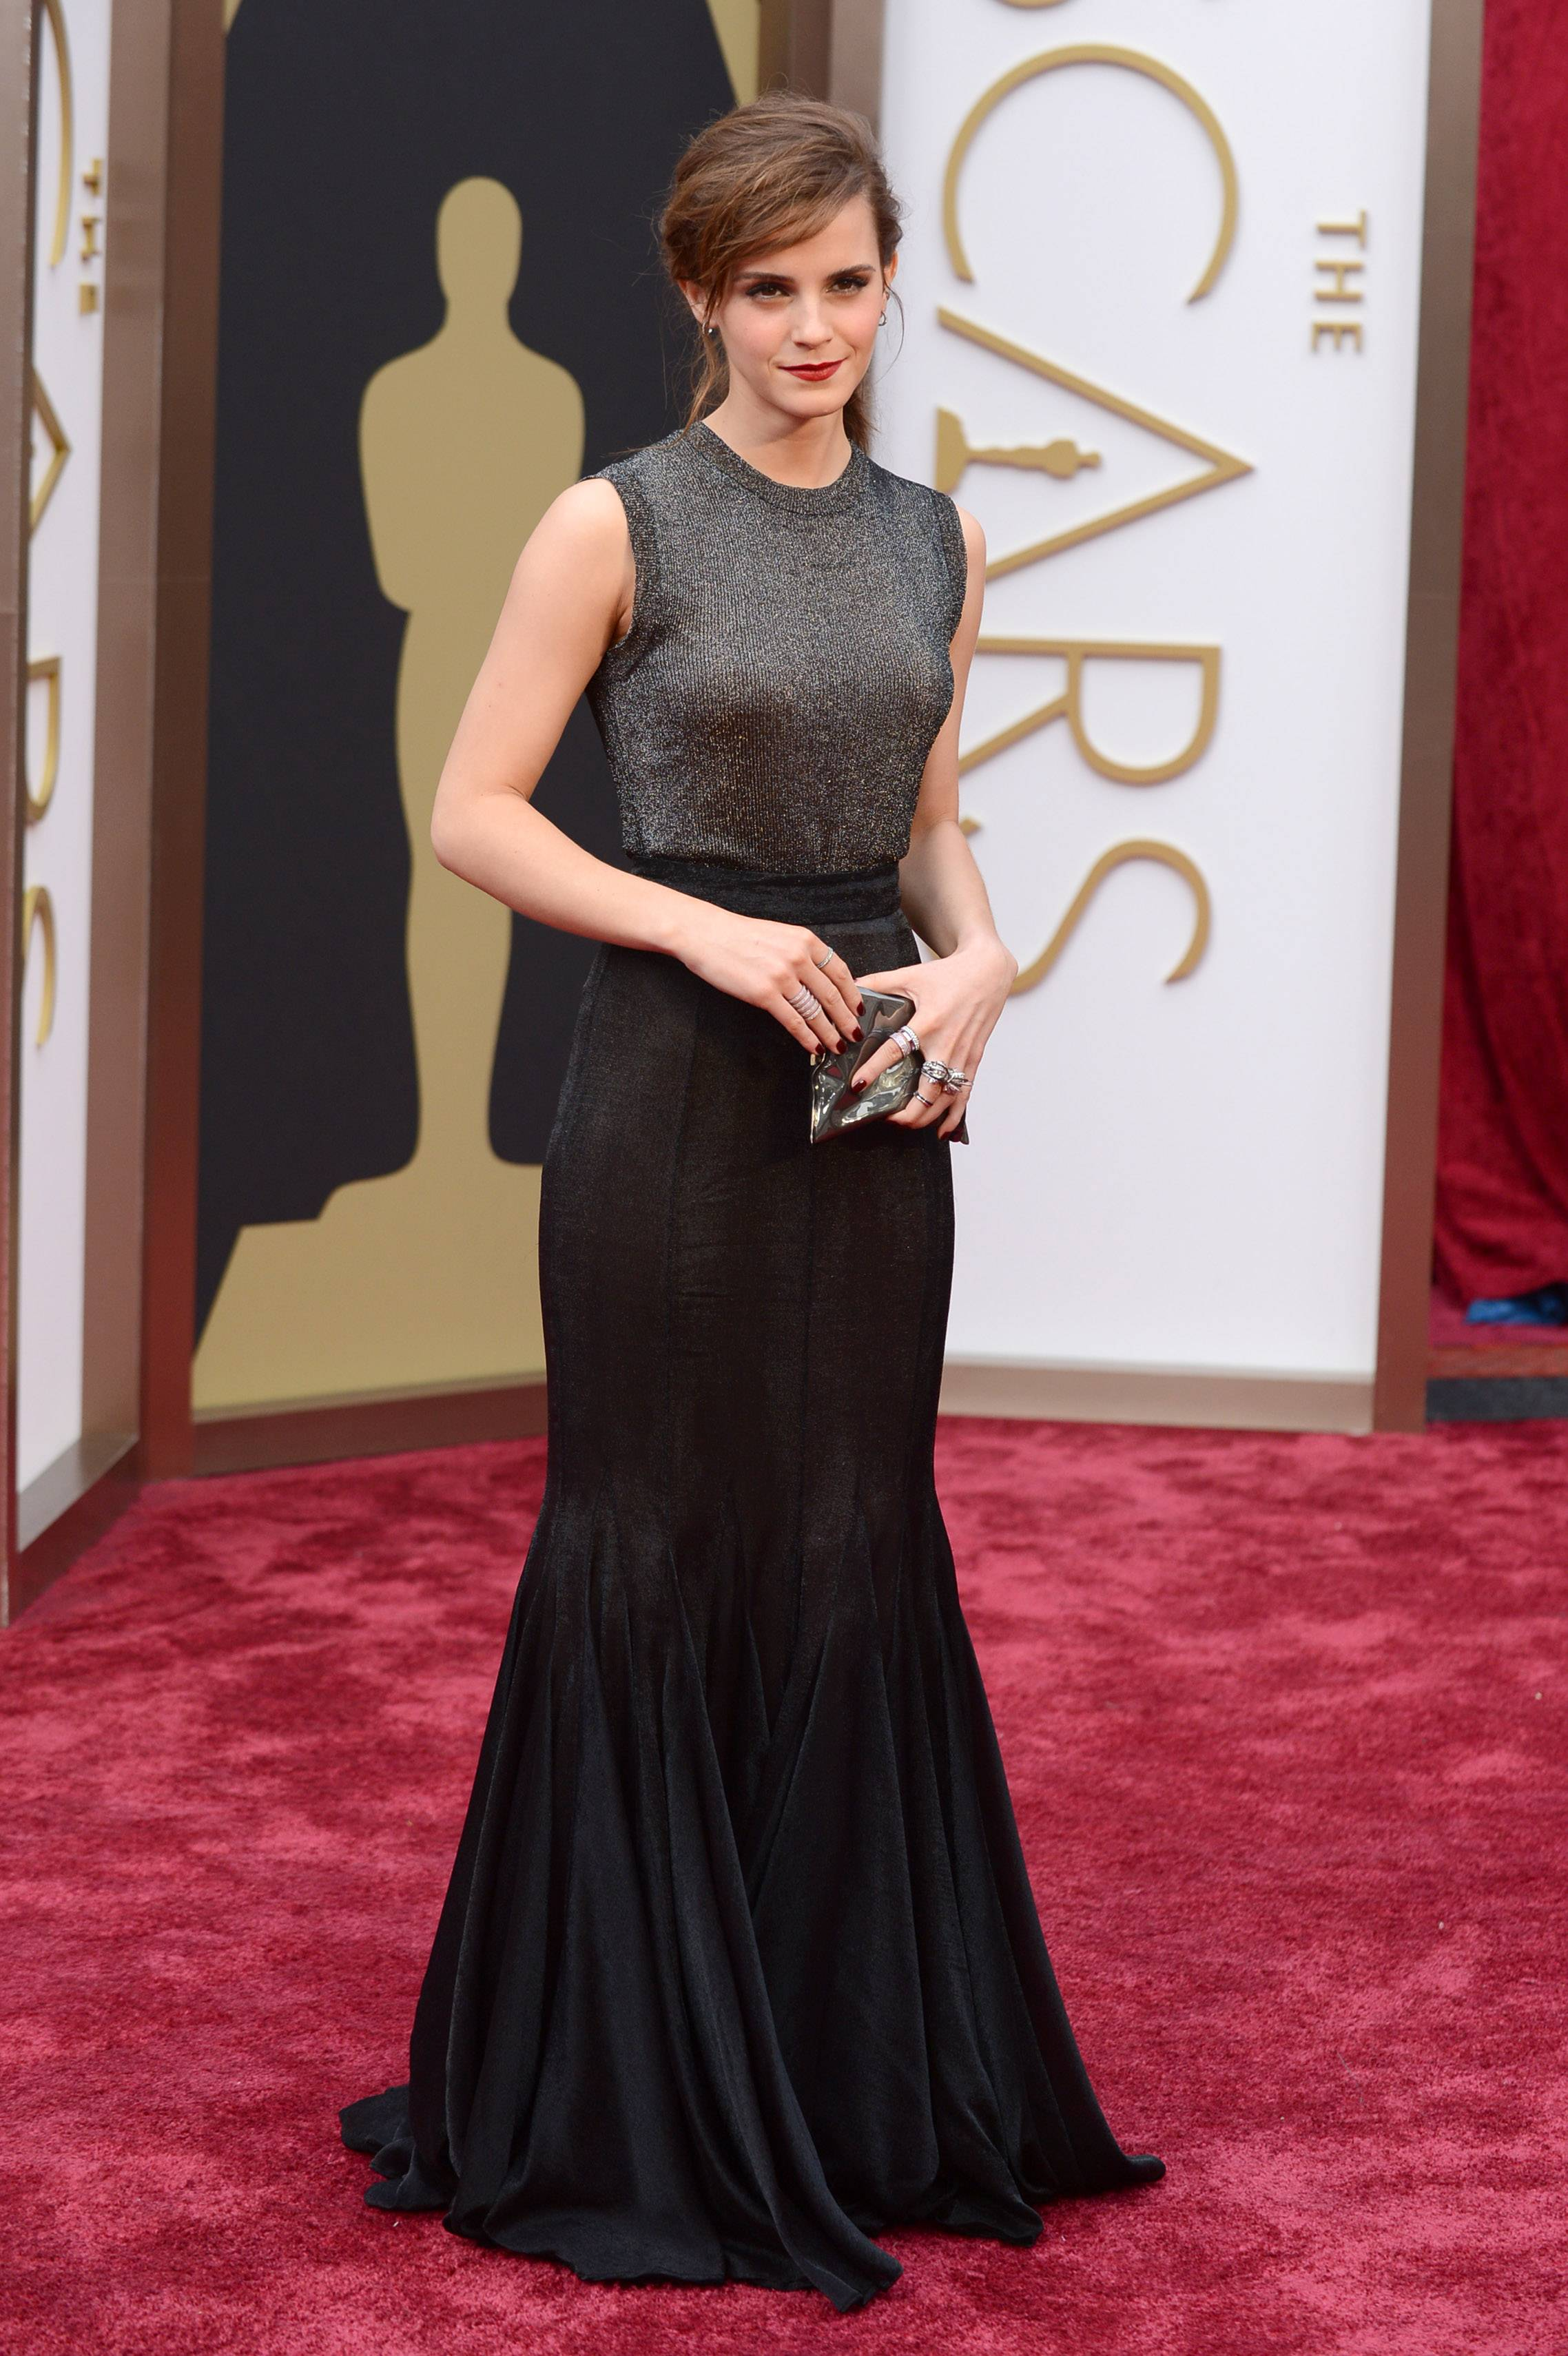 """The Bling Ring"" star Emma Watson arrives at the Oscars on Sunday."